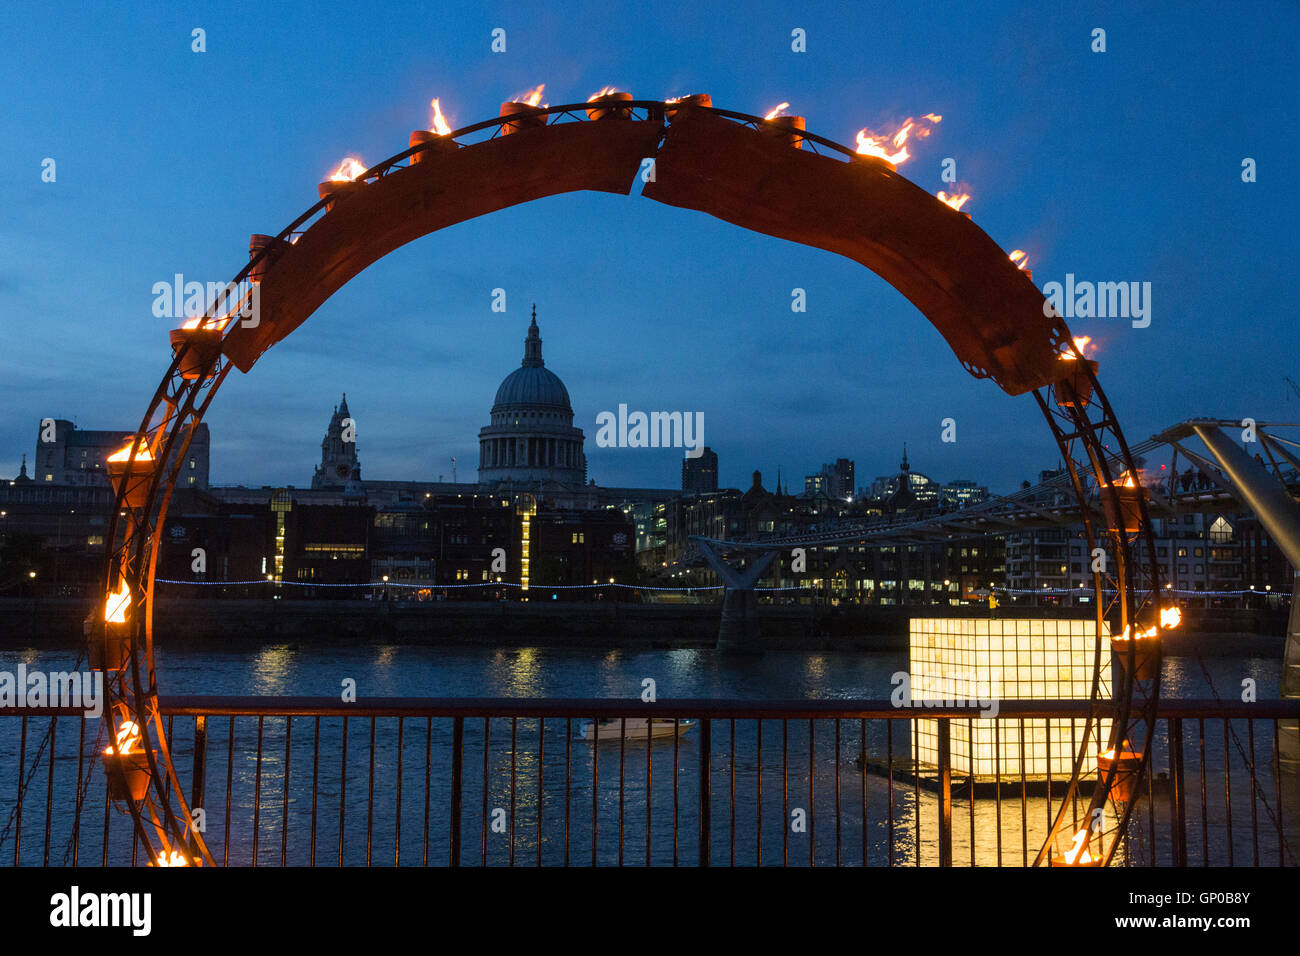 london-uk-installations-are-lit-on-bankside-of-the-river-thames-allowing-GP0B8Y.jpg